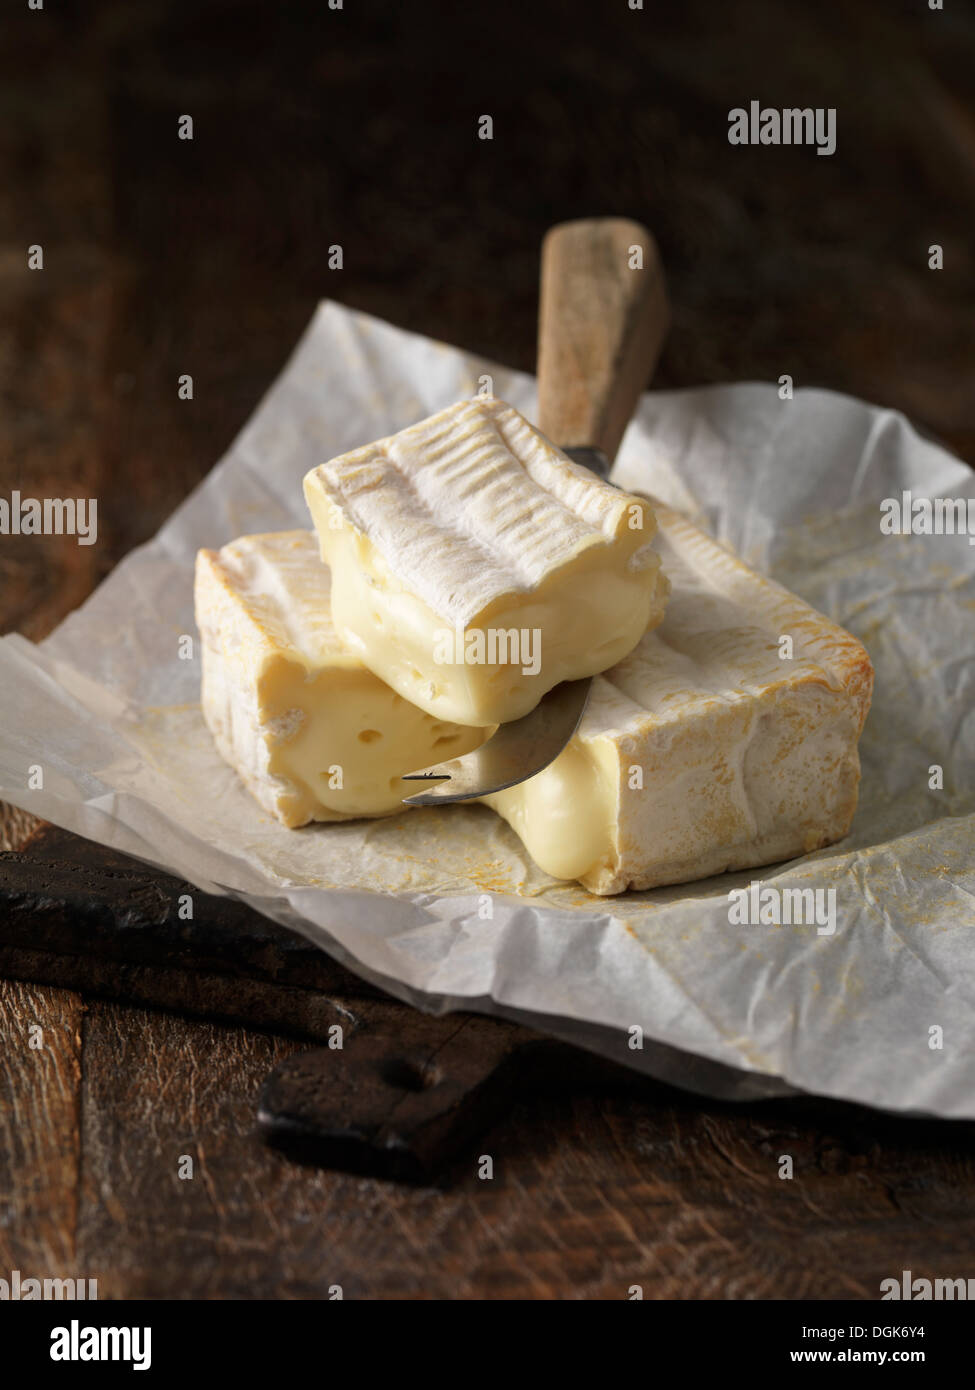 Still life with slice of pont l'eveque cheese - Stock Image